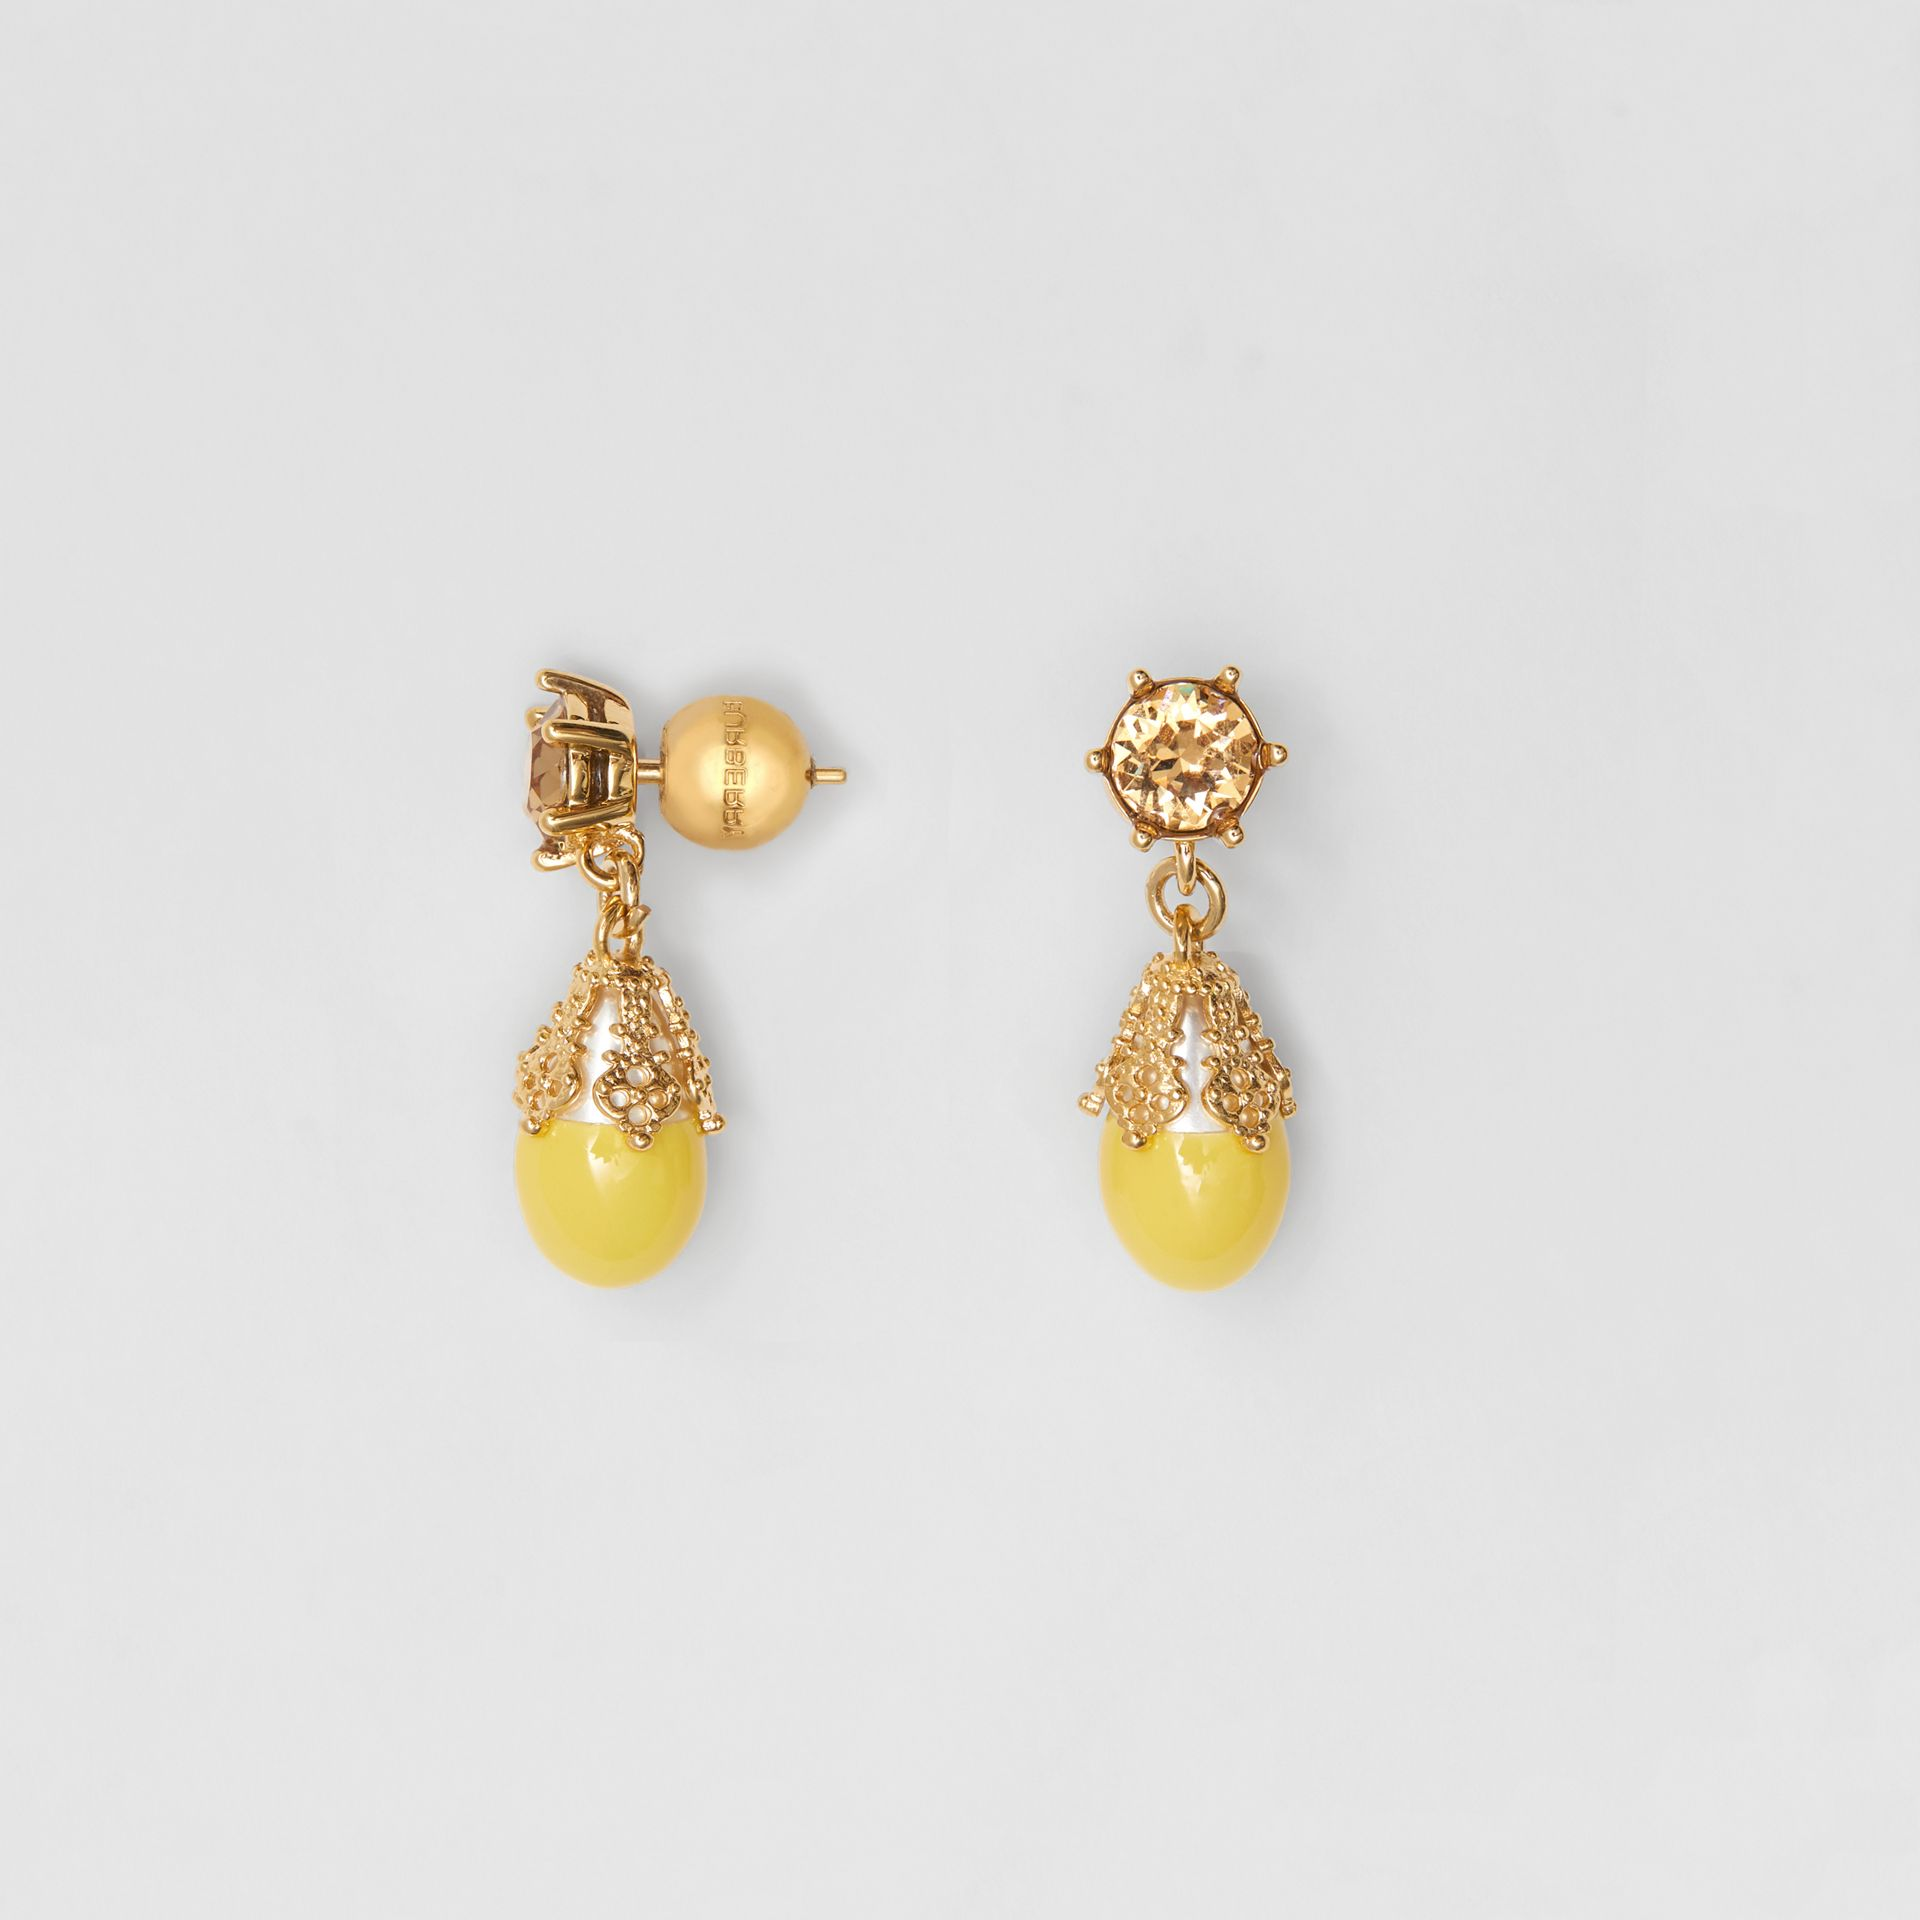 Gold-plated Faux Pearl Charm Earrings in Light Topaz/light - Women | Burberry - gallery image 3